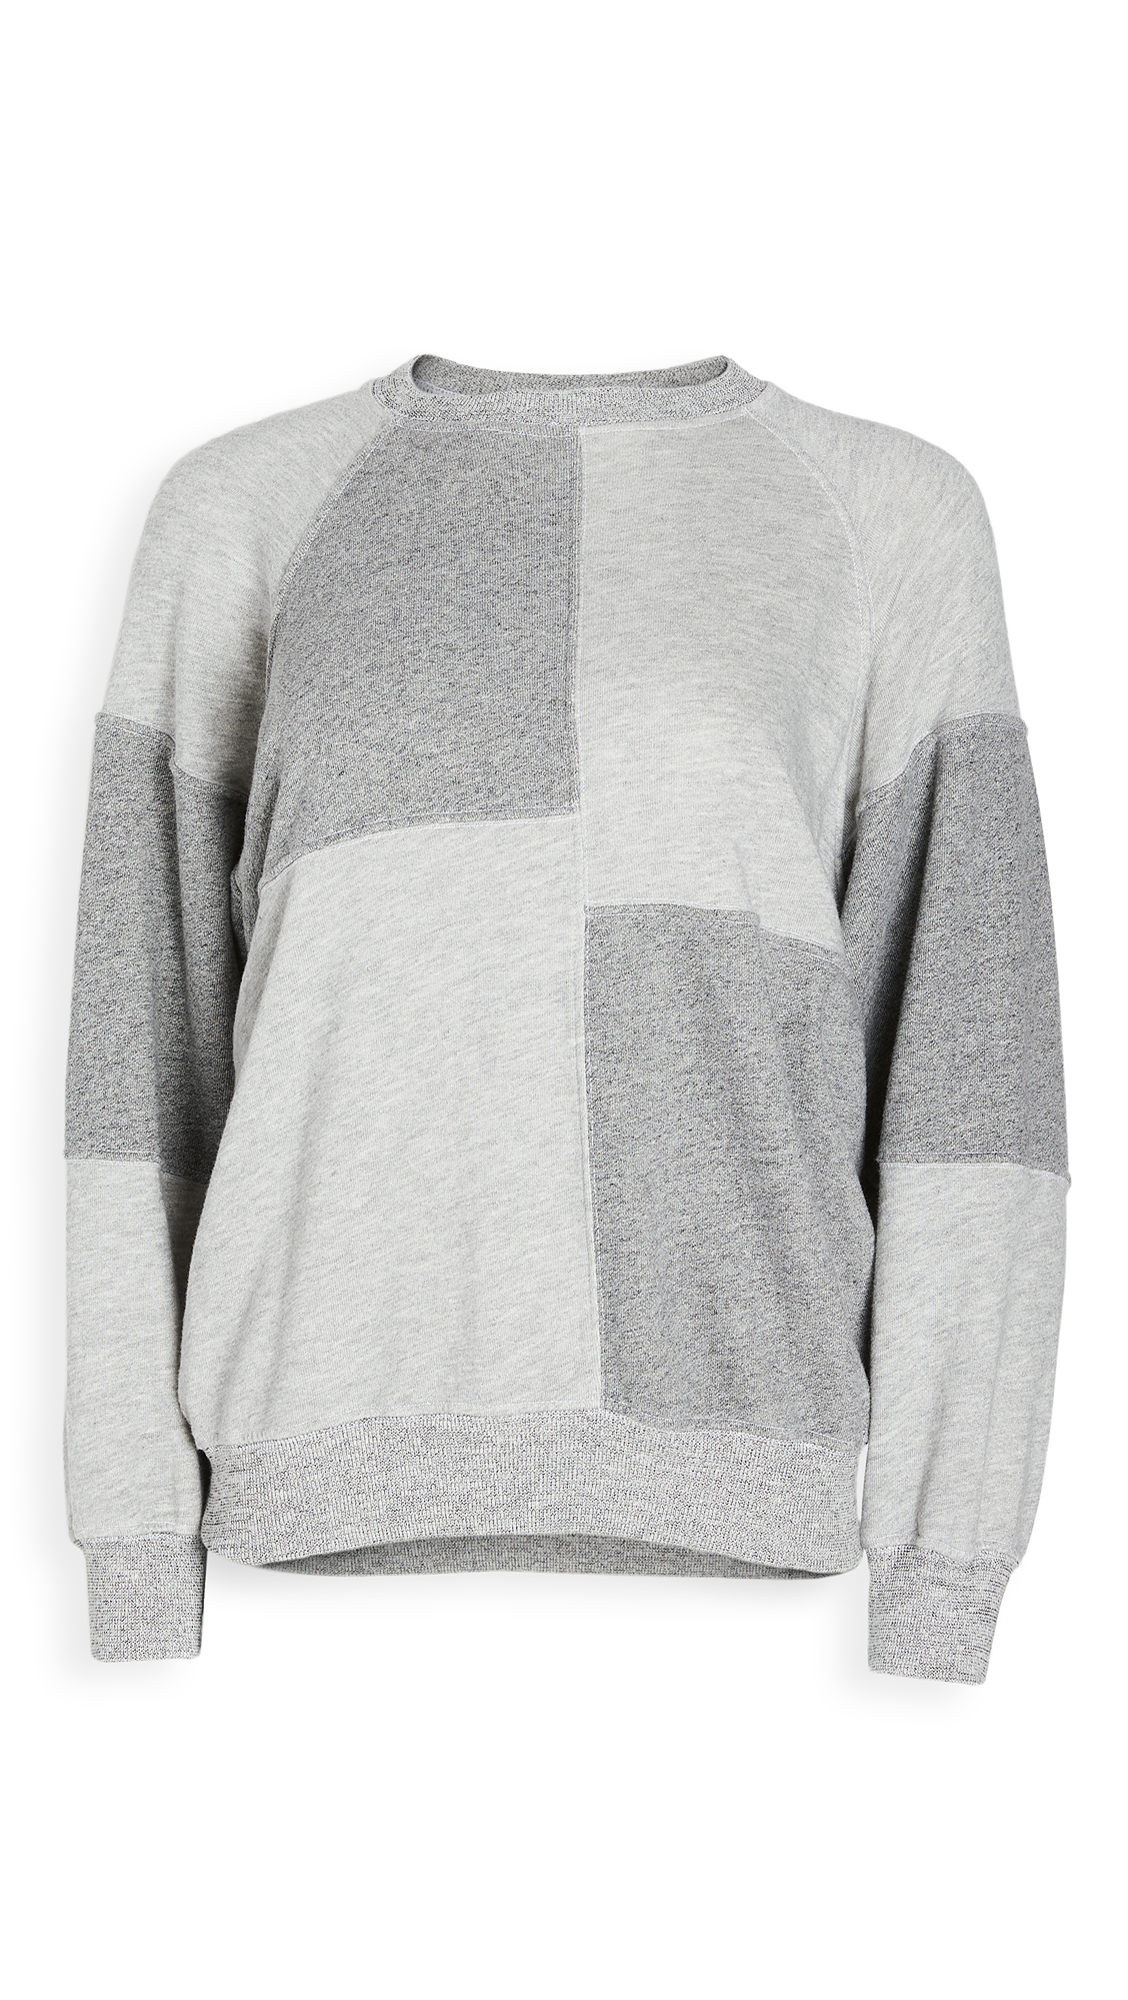 THE GREAT. The Patchwork Sweatshirt. - 30% Off Sale